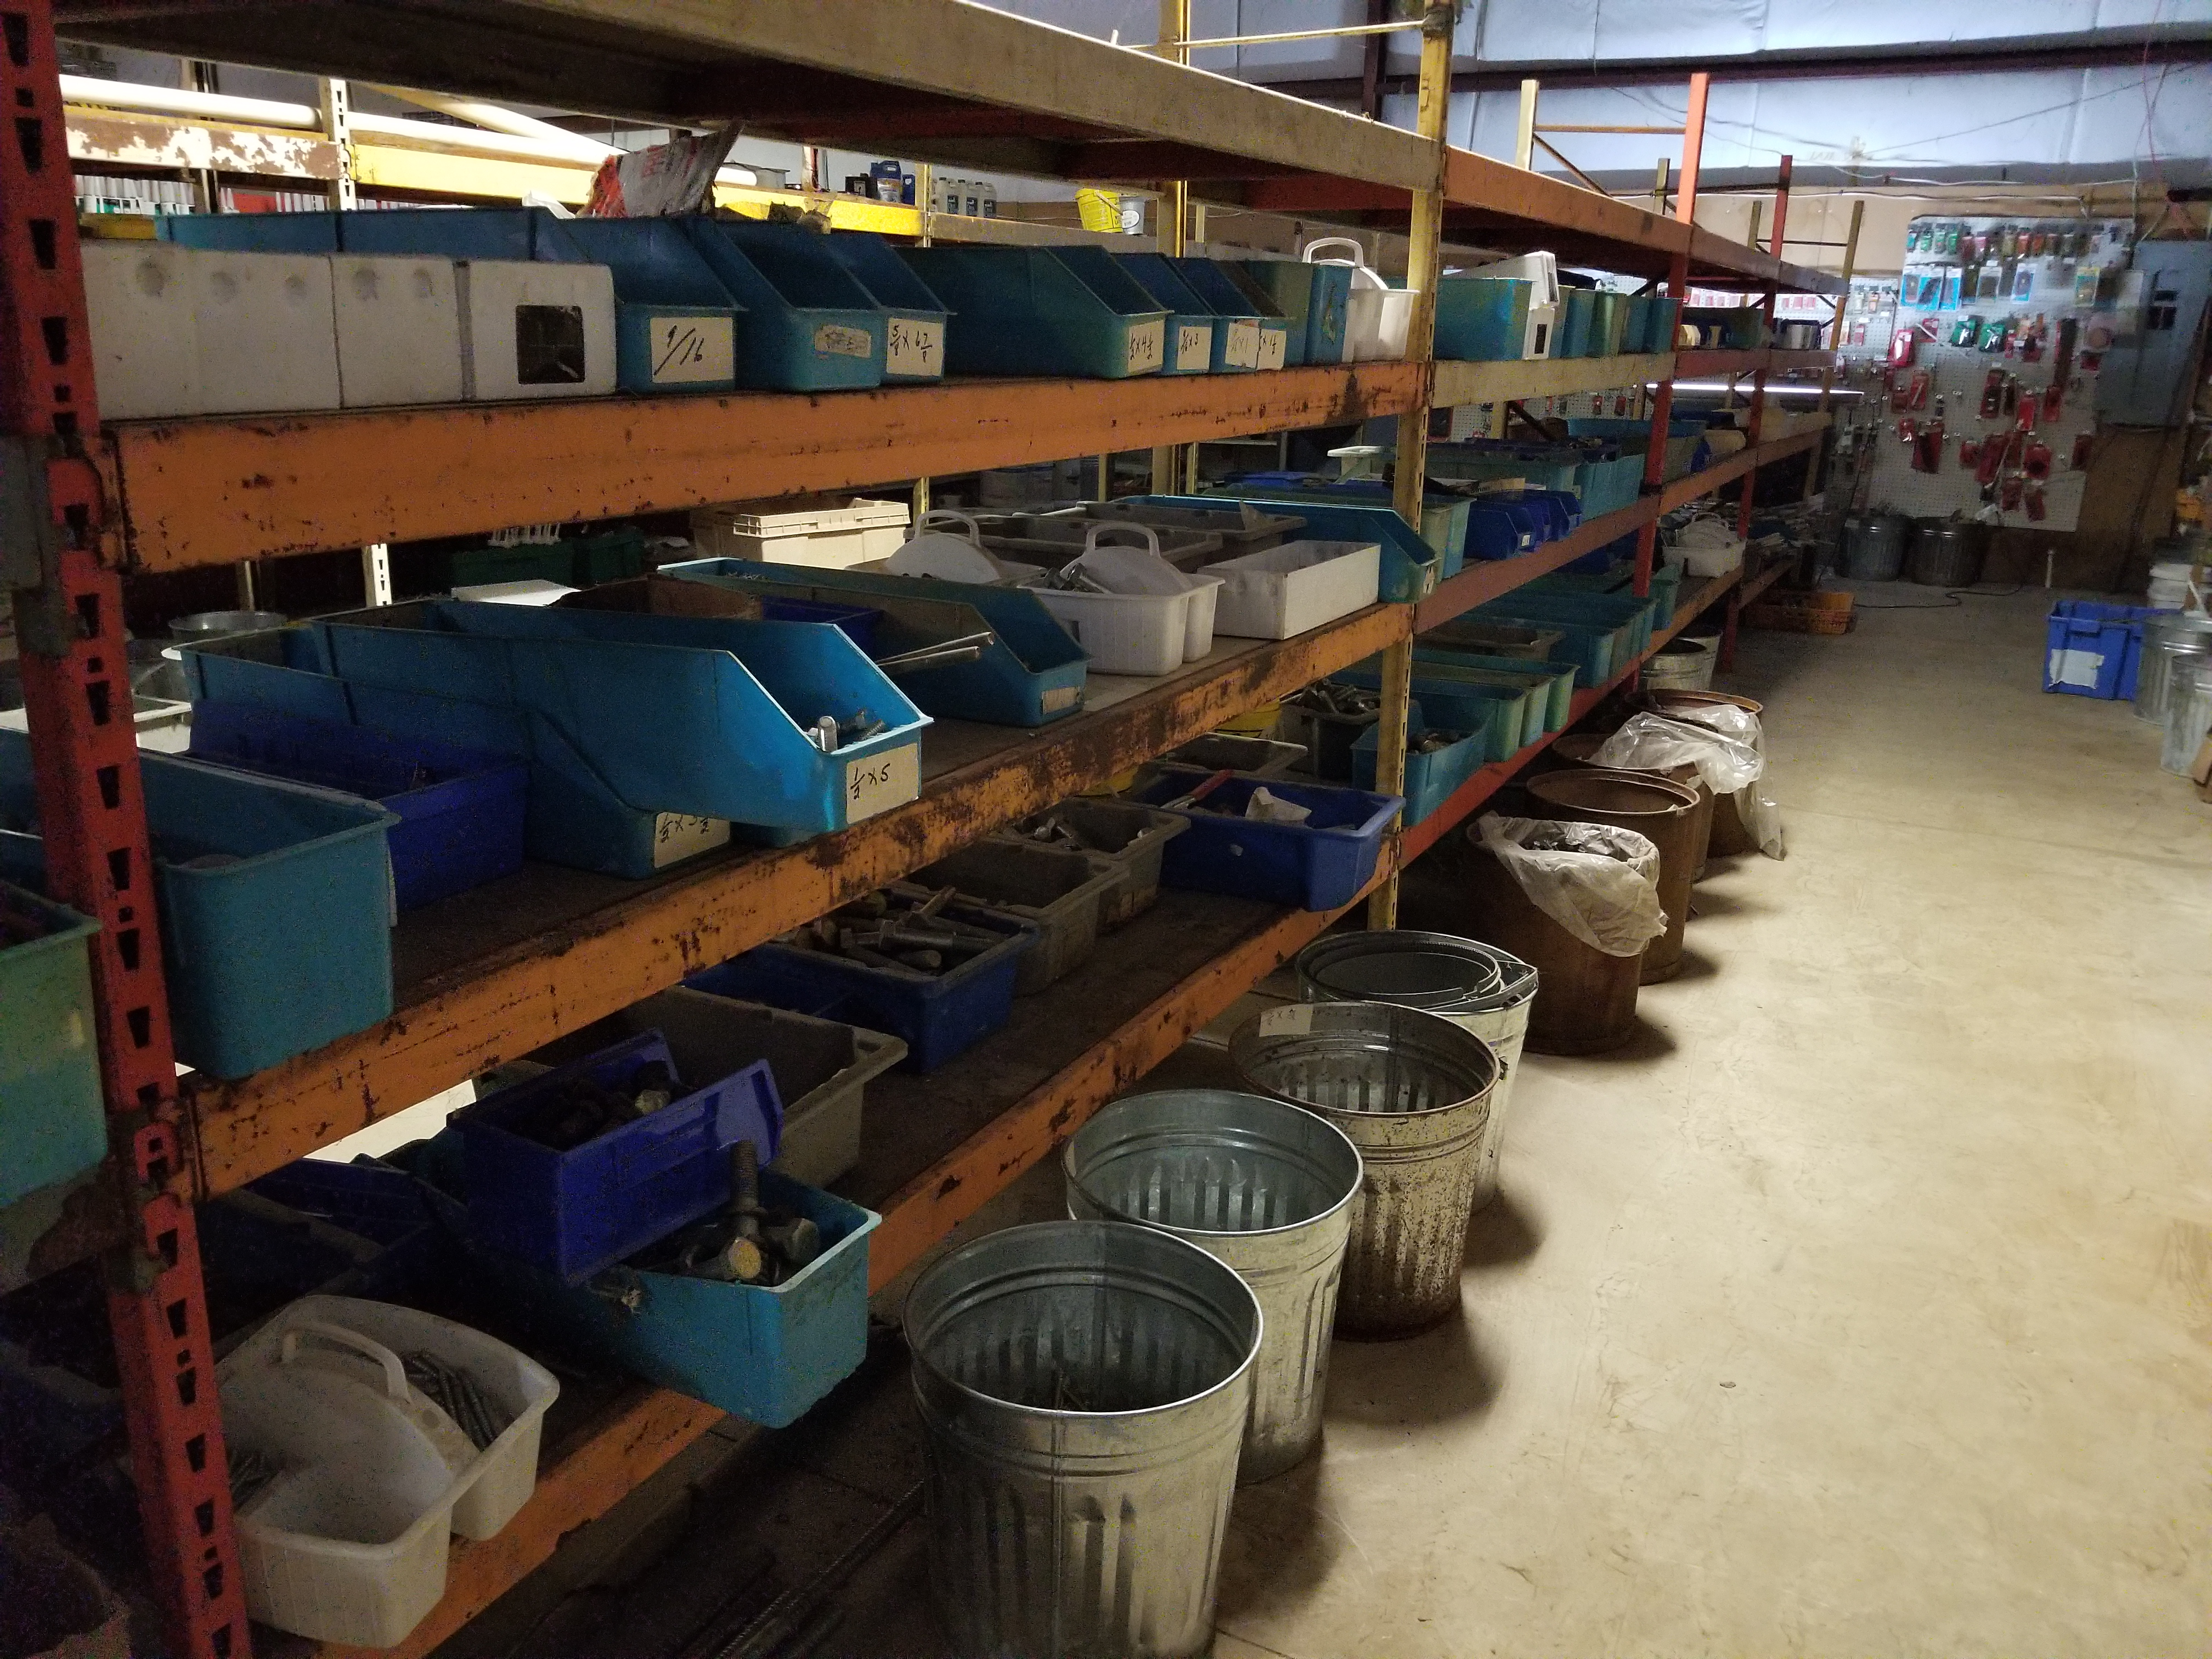 Aisle of Inventory (6)